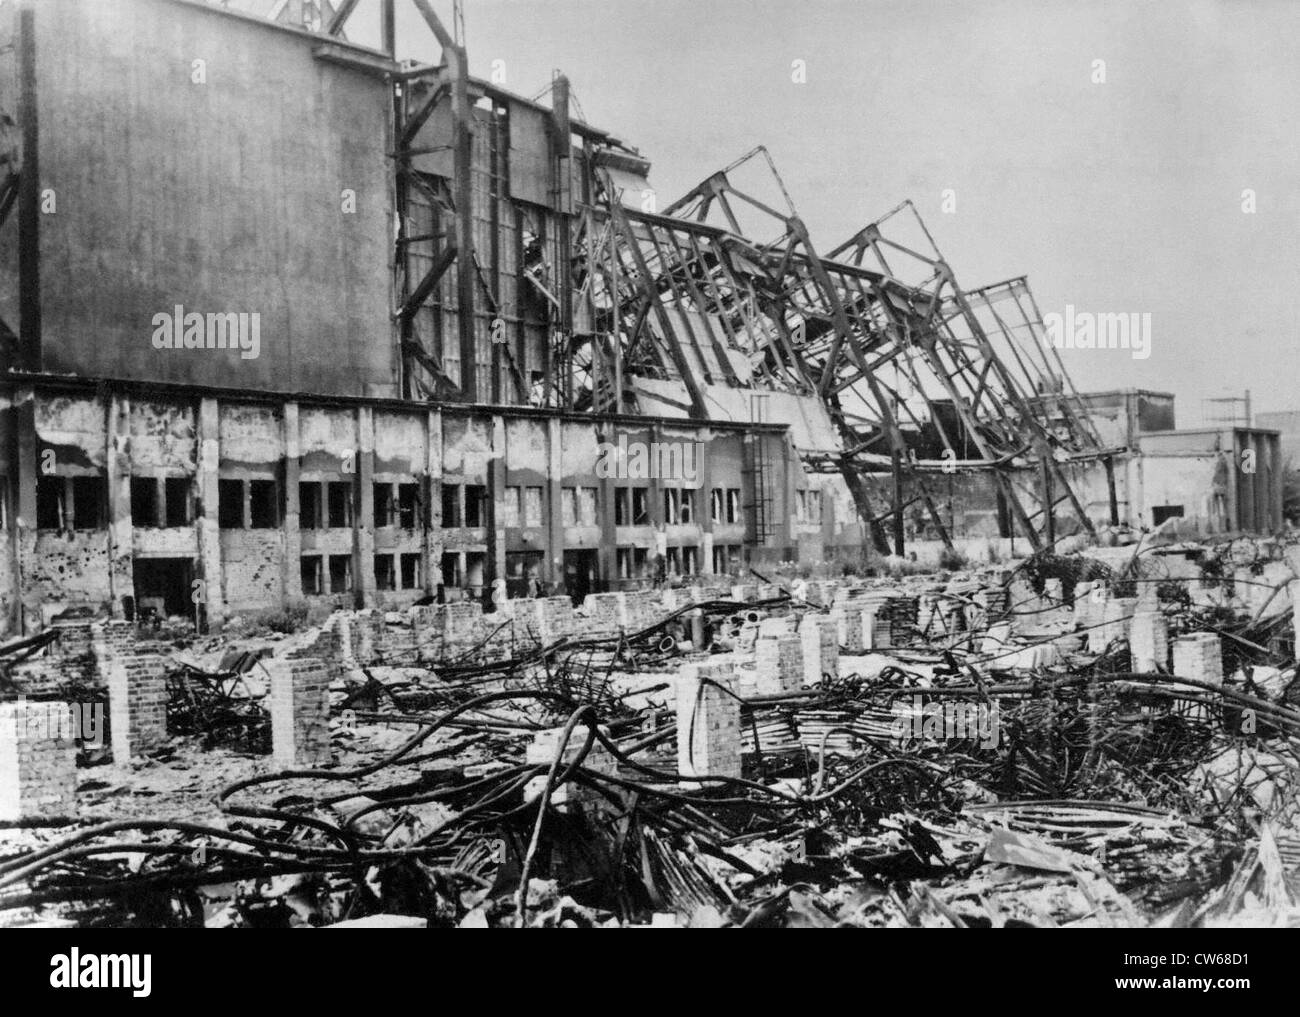 Ruins of the Leipzig  (East Germany) Fair buildings, 1945. - Stock Image